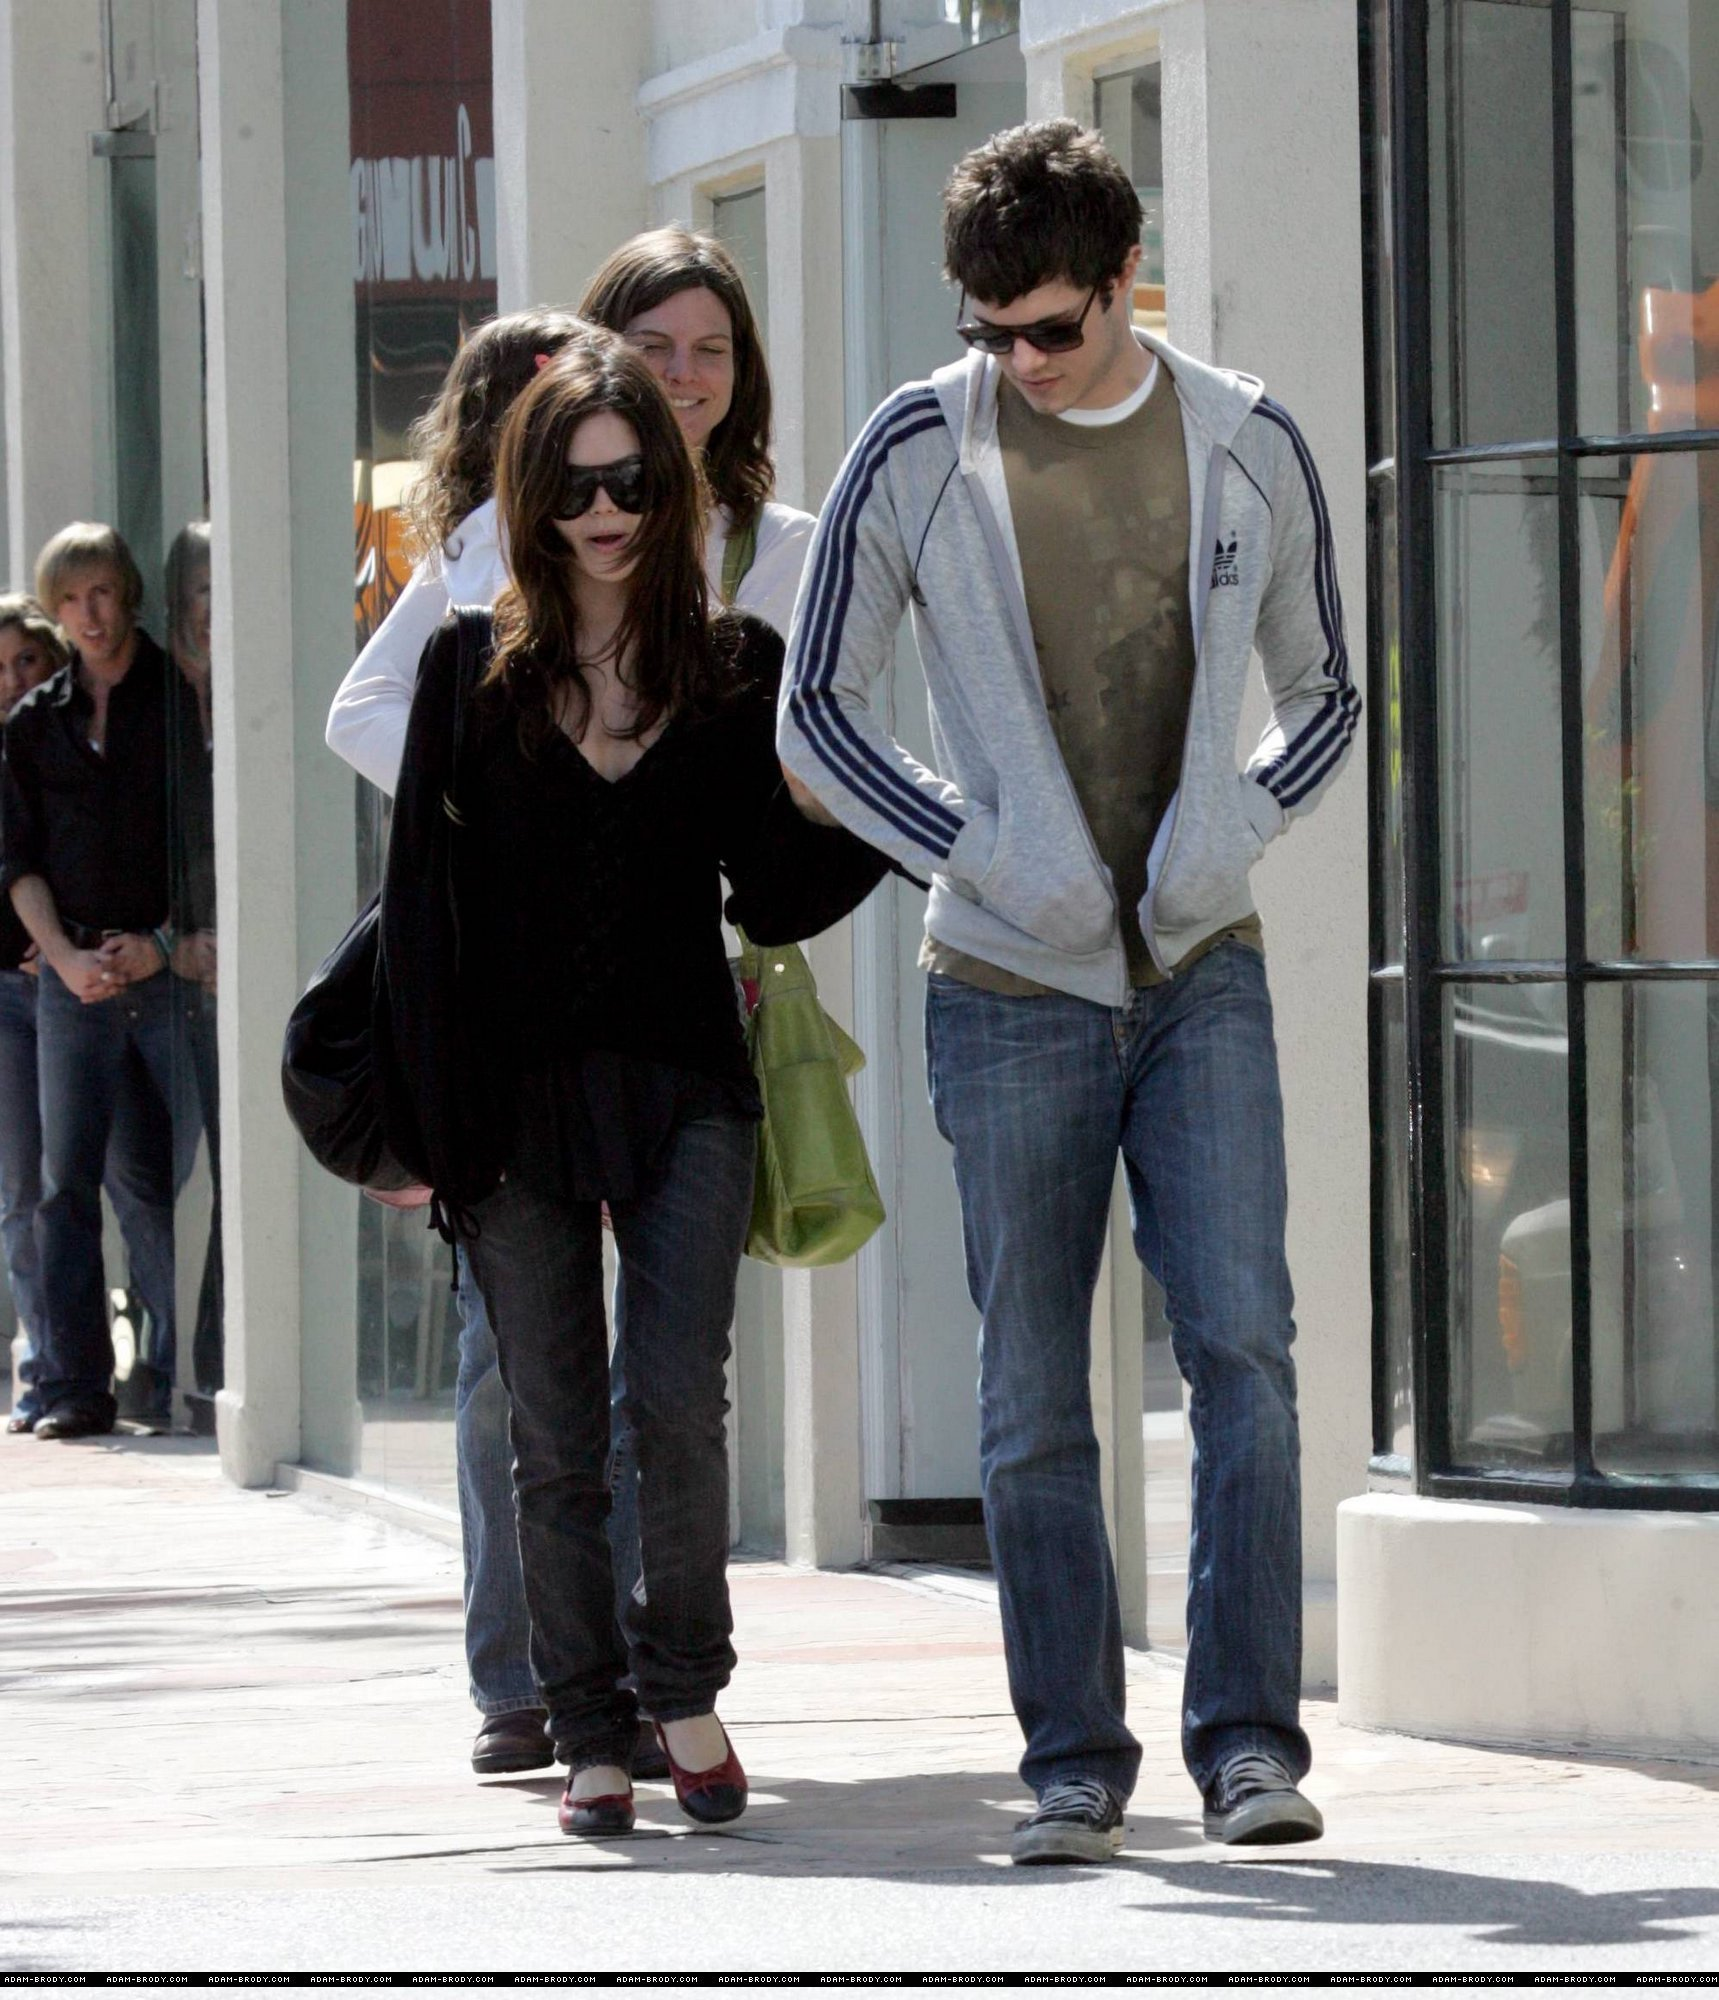 Rachel&Adam - Adam Brody and Rachel Bilson Photo (2314285) - Fanpop